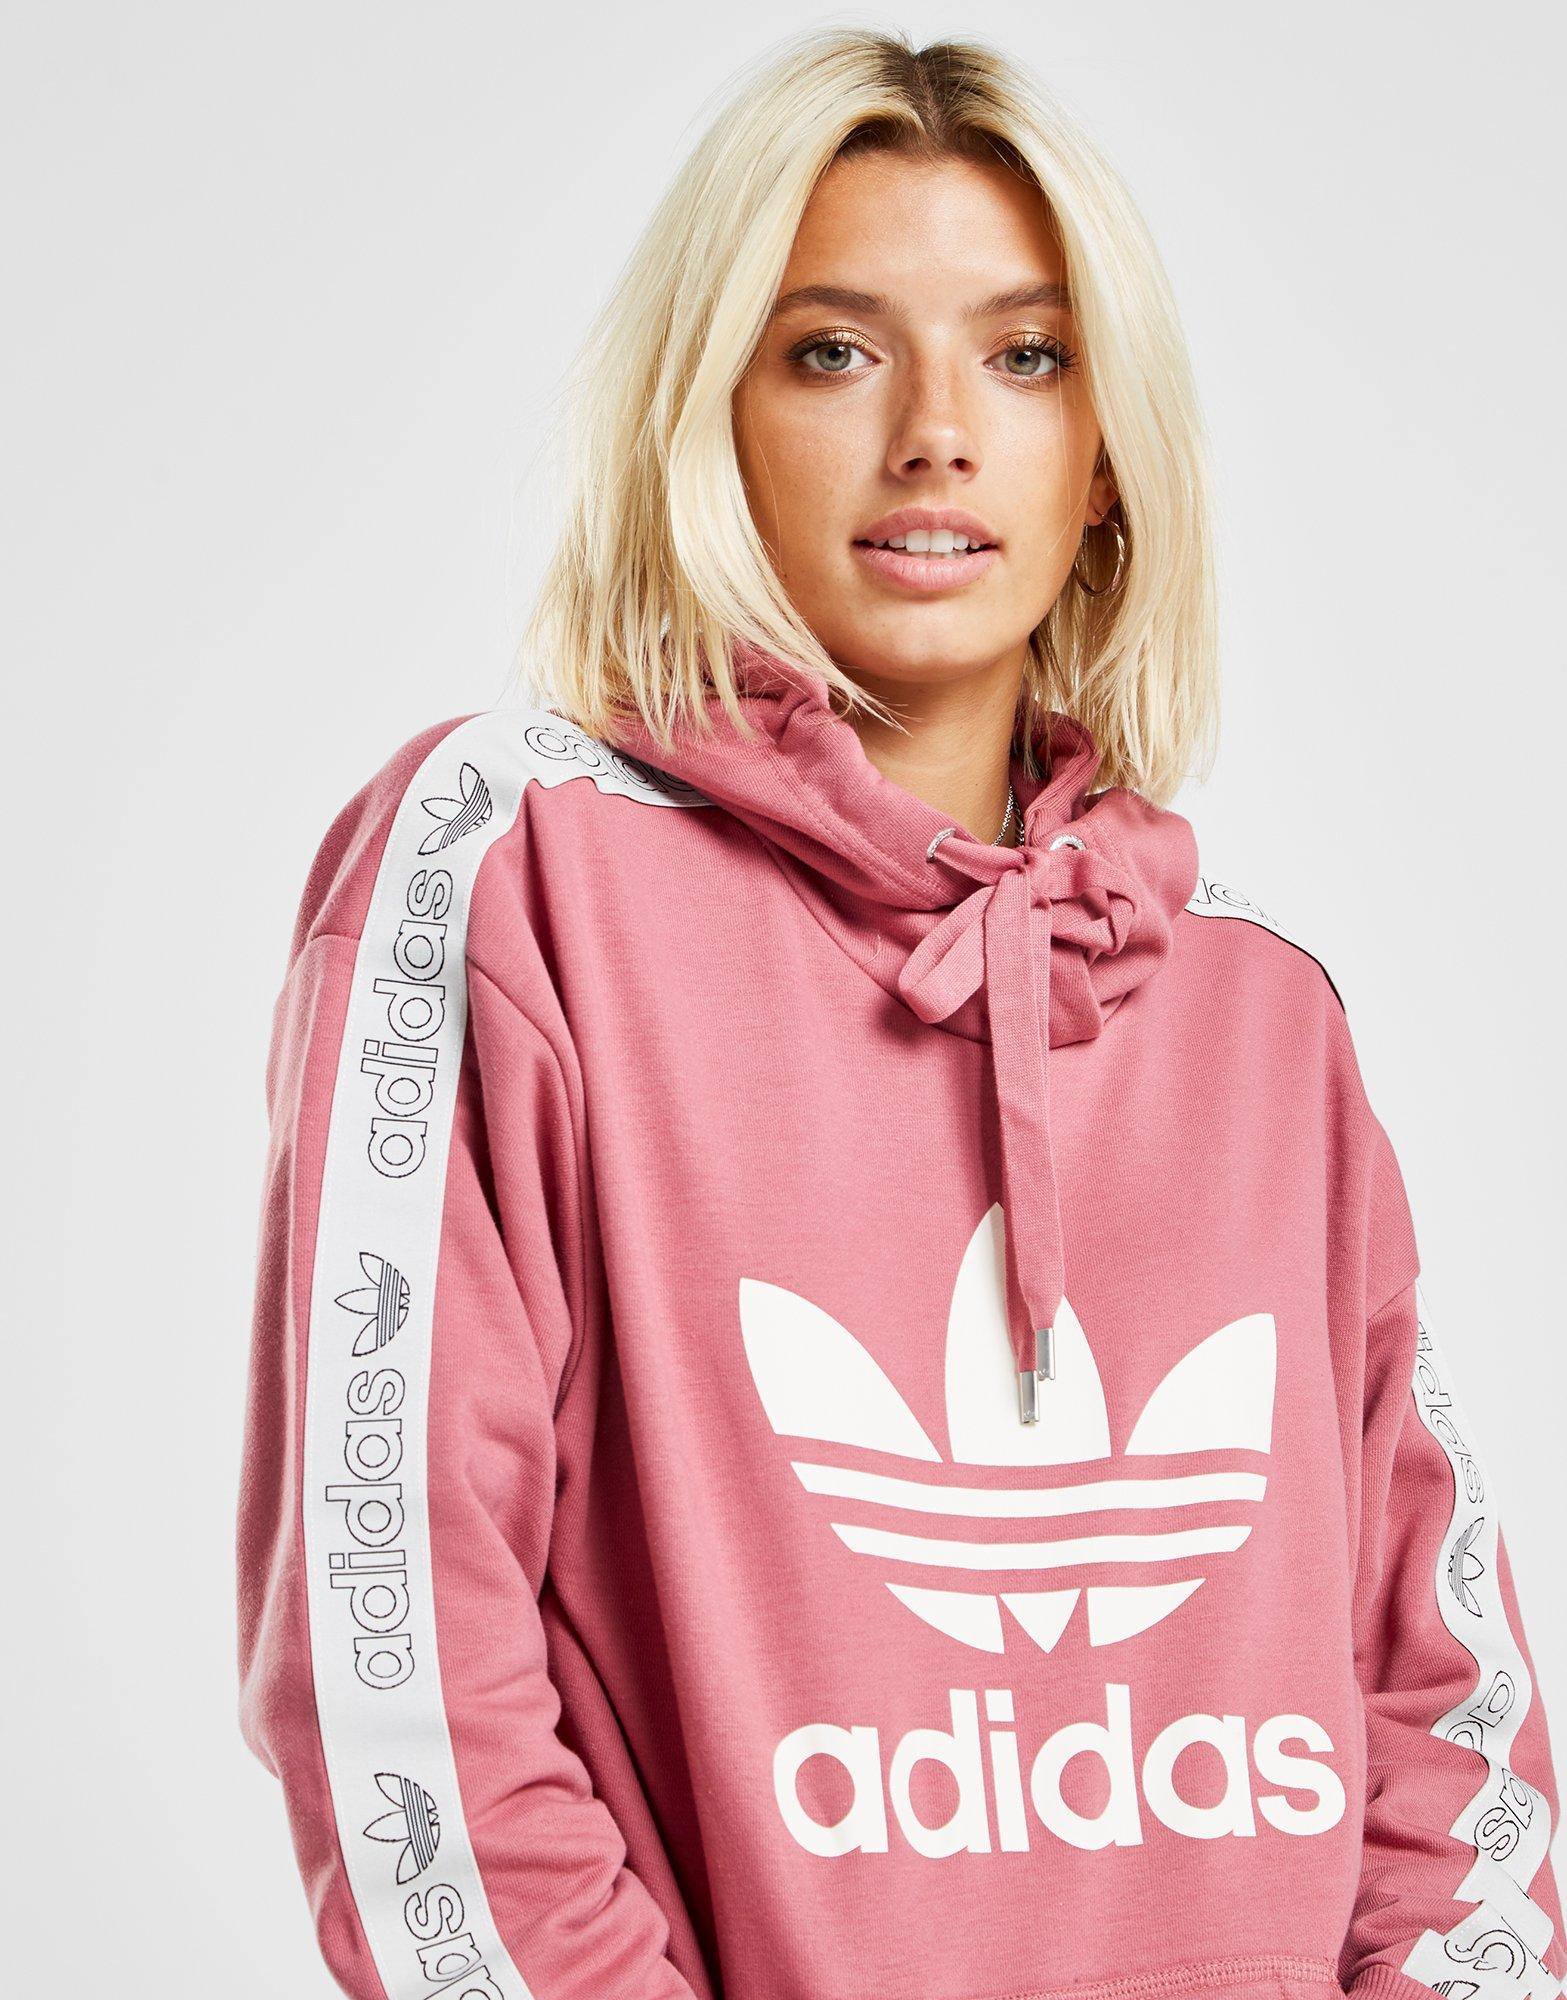 adidas Originals Tape Overhead Hoodie in Pink - Lyst 40e94552a